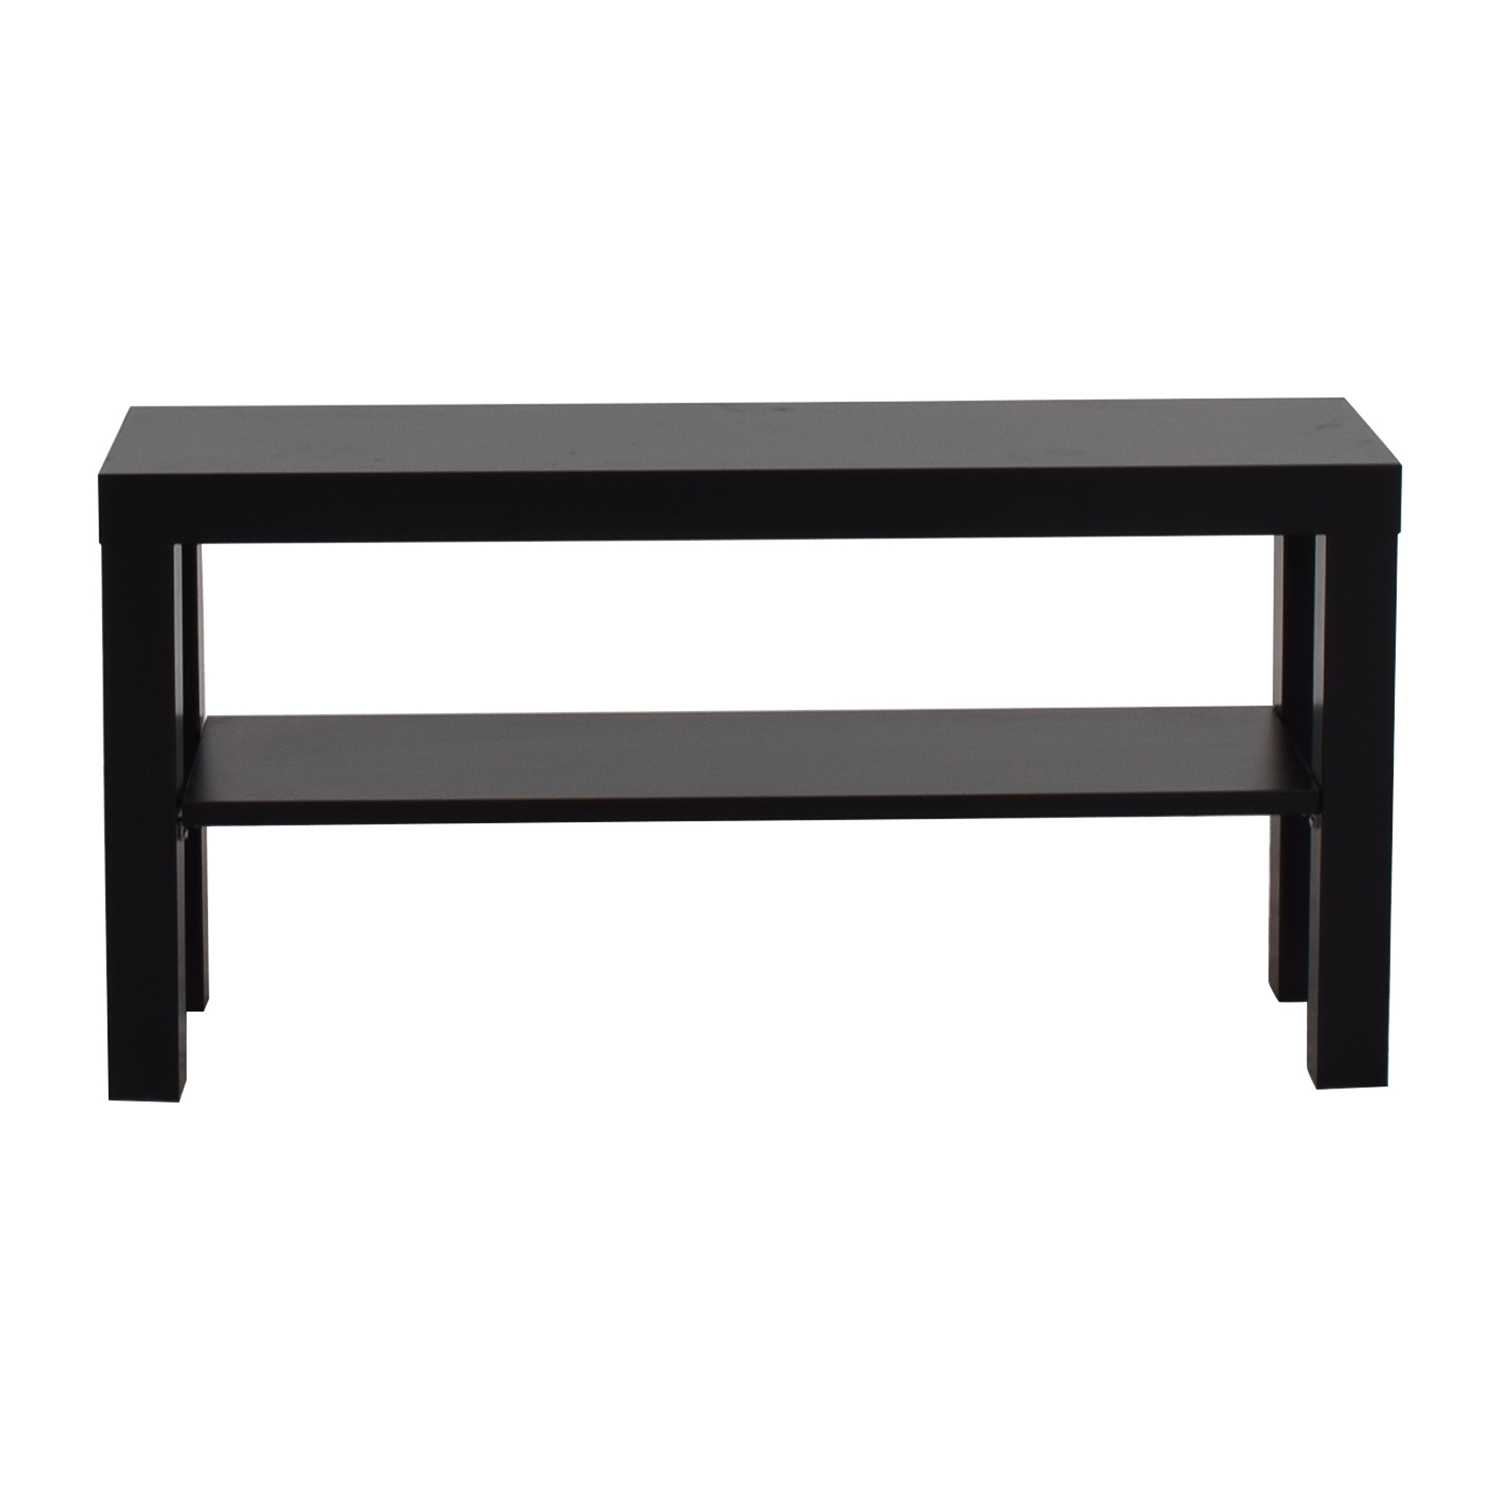 ikea lack sofa table lack coffee table oak effect 90x55 cm. Black Bedroom Furniture Sets. Home Design Ideas